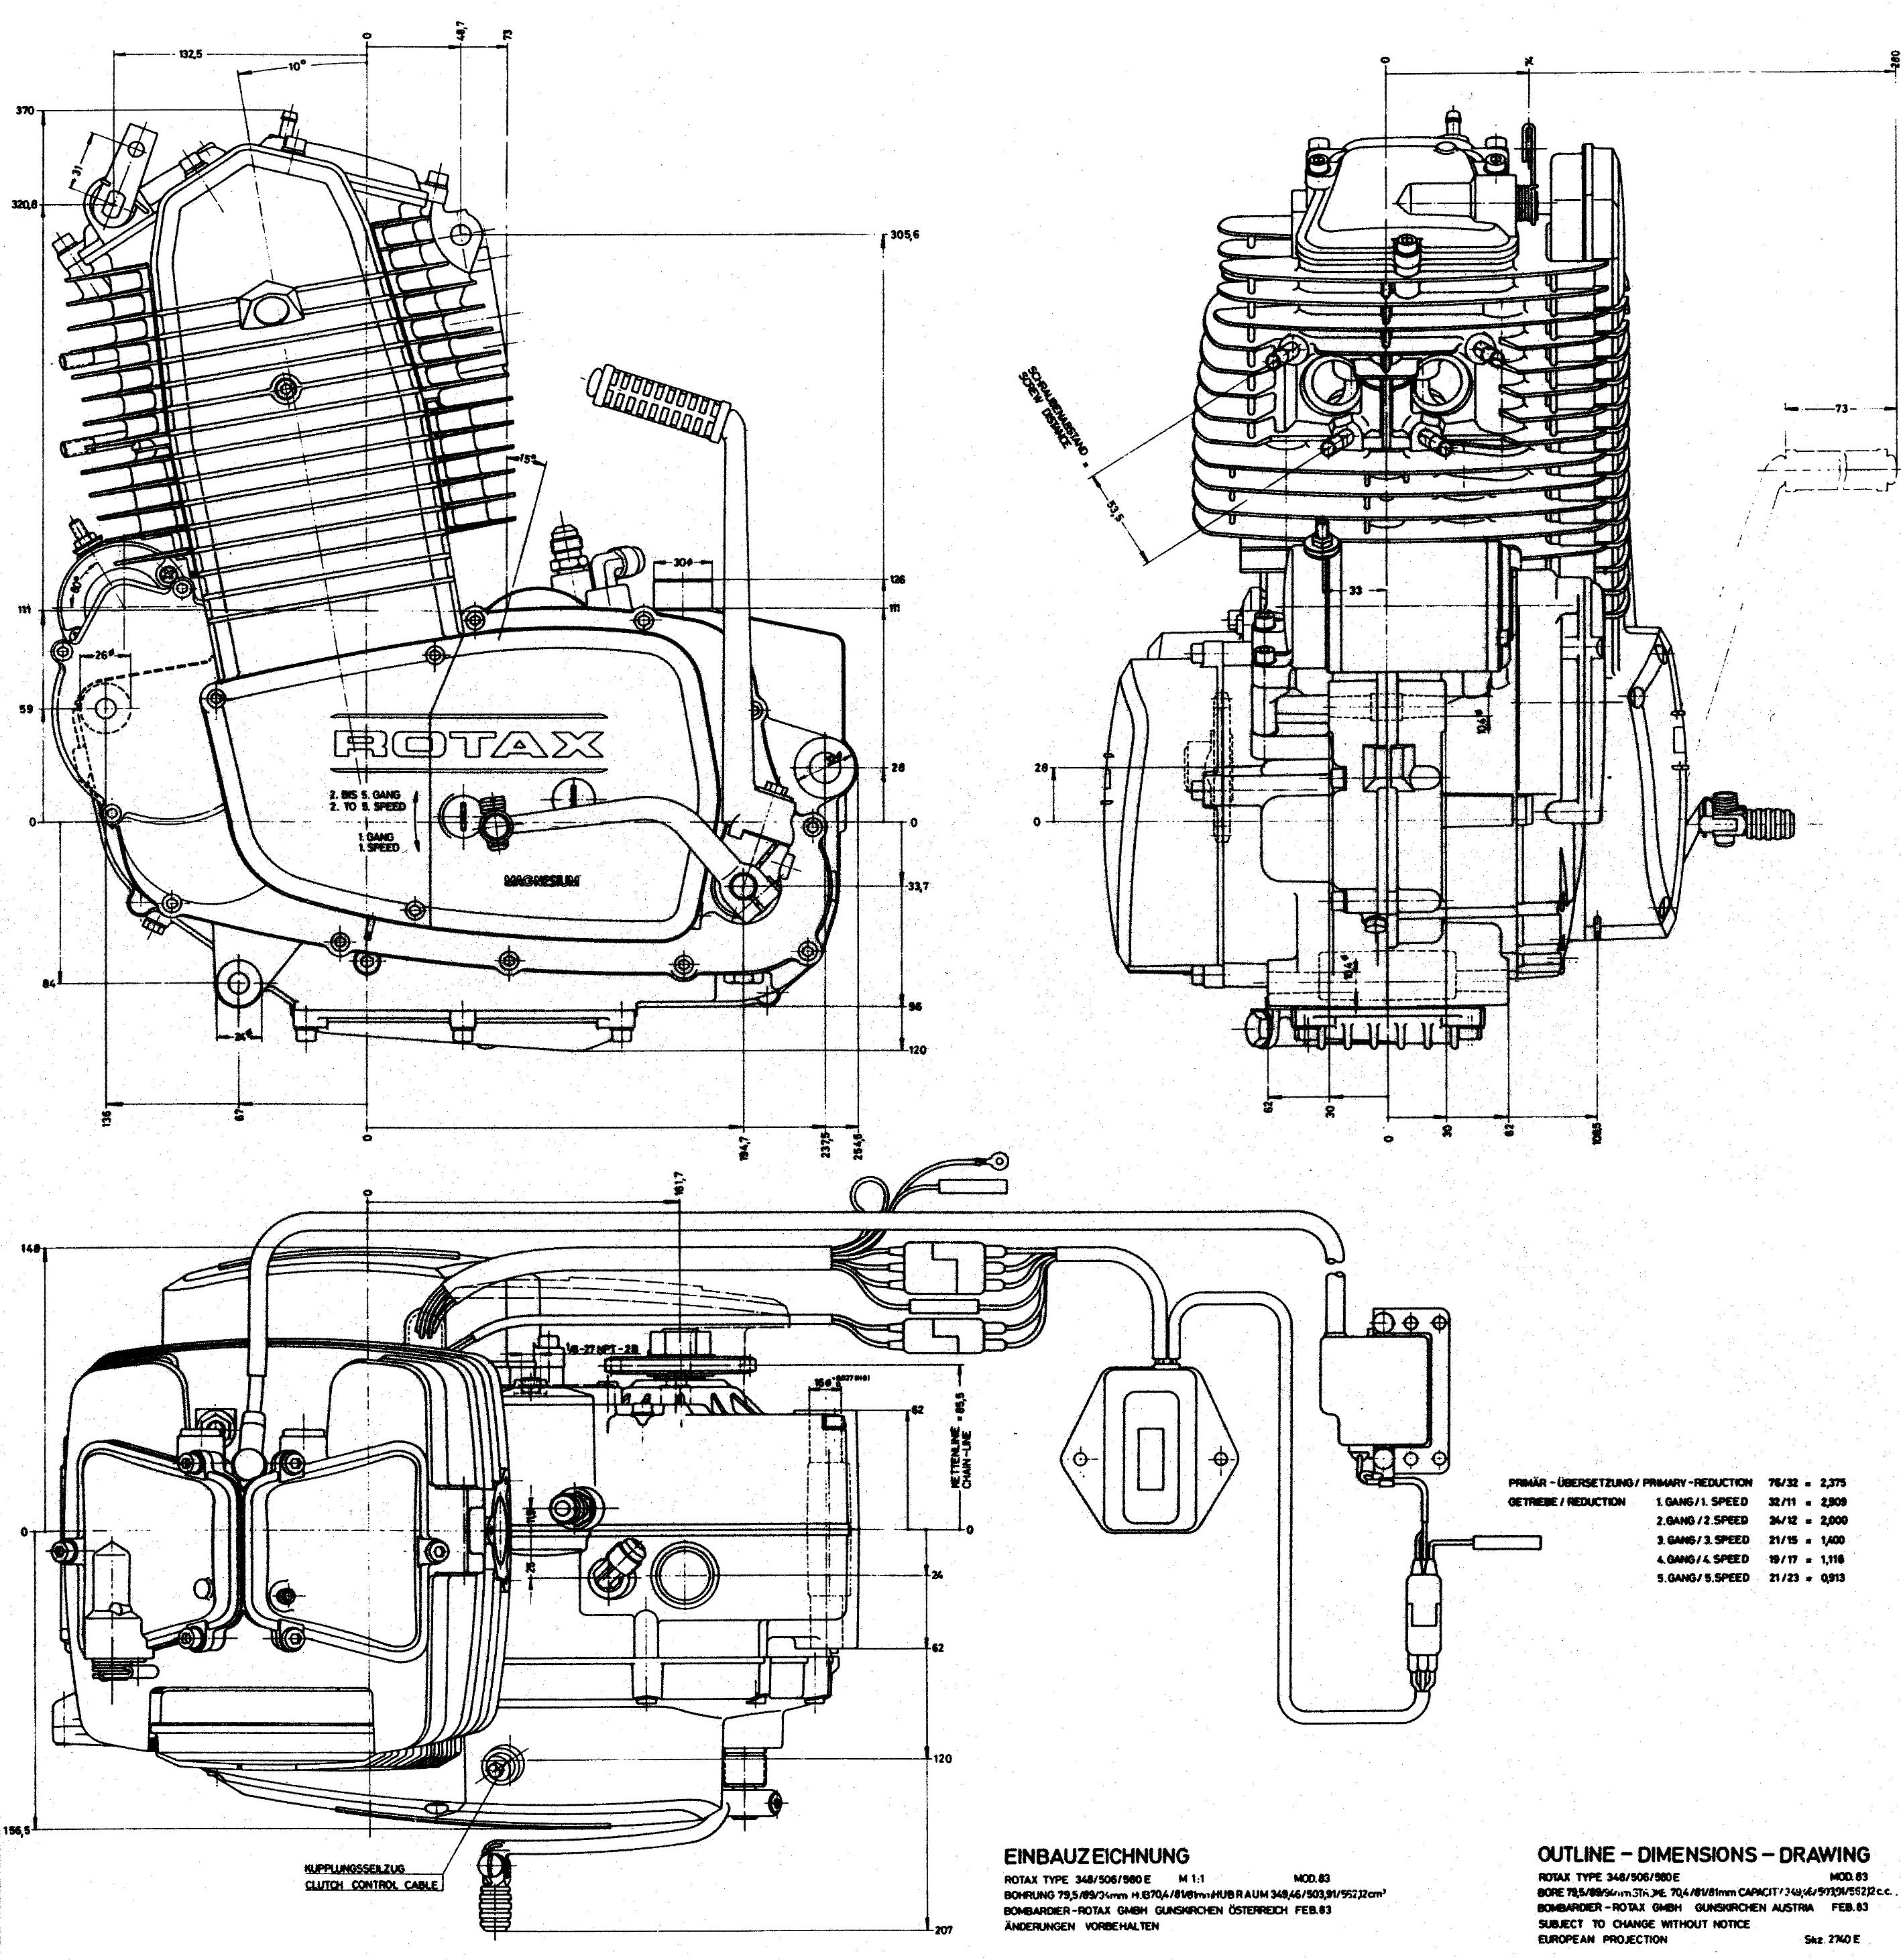 buell 500 engine diagram baja engine diagram wiring